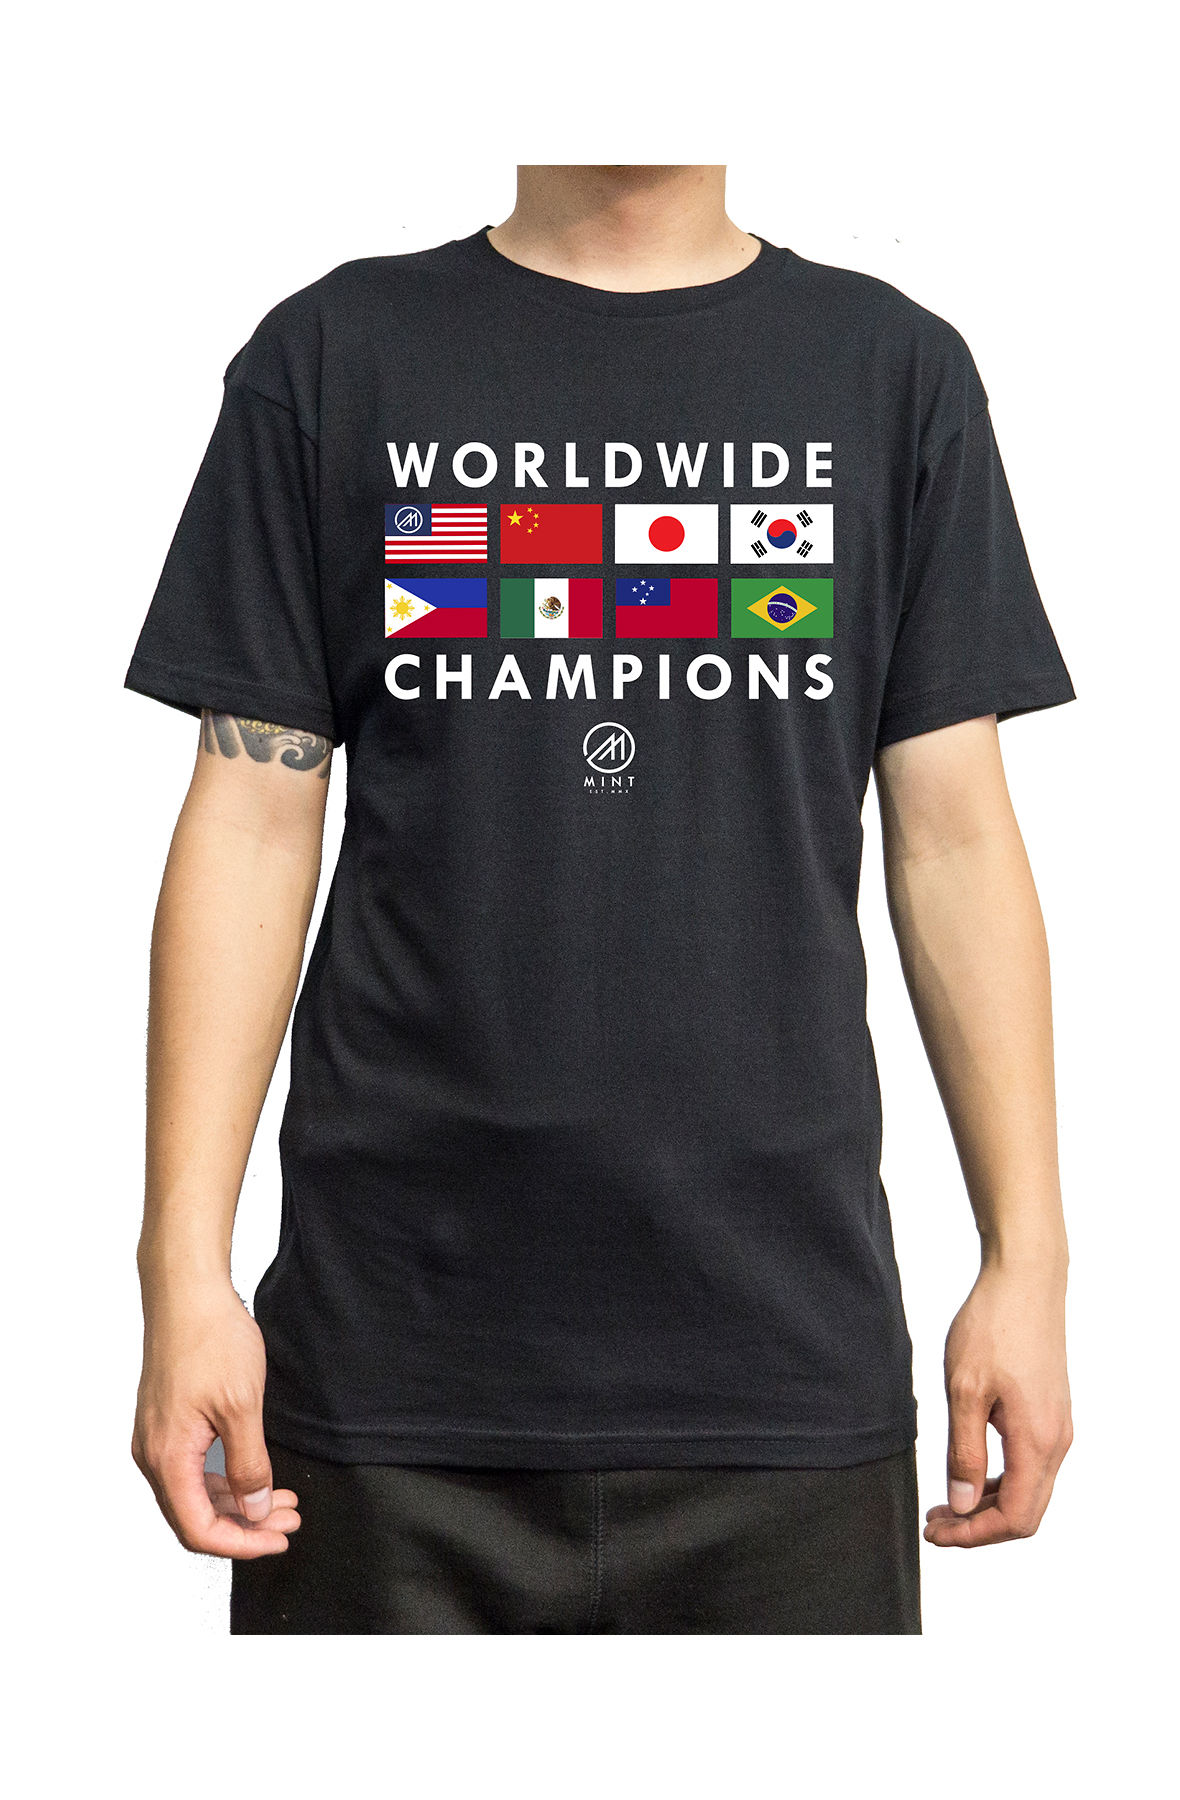 Image of The Mint Flags 2 Tee 2X-3X in Black